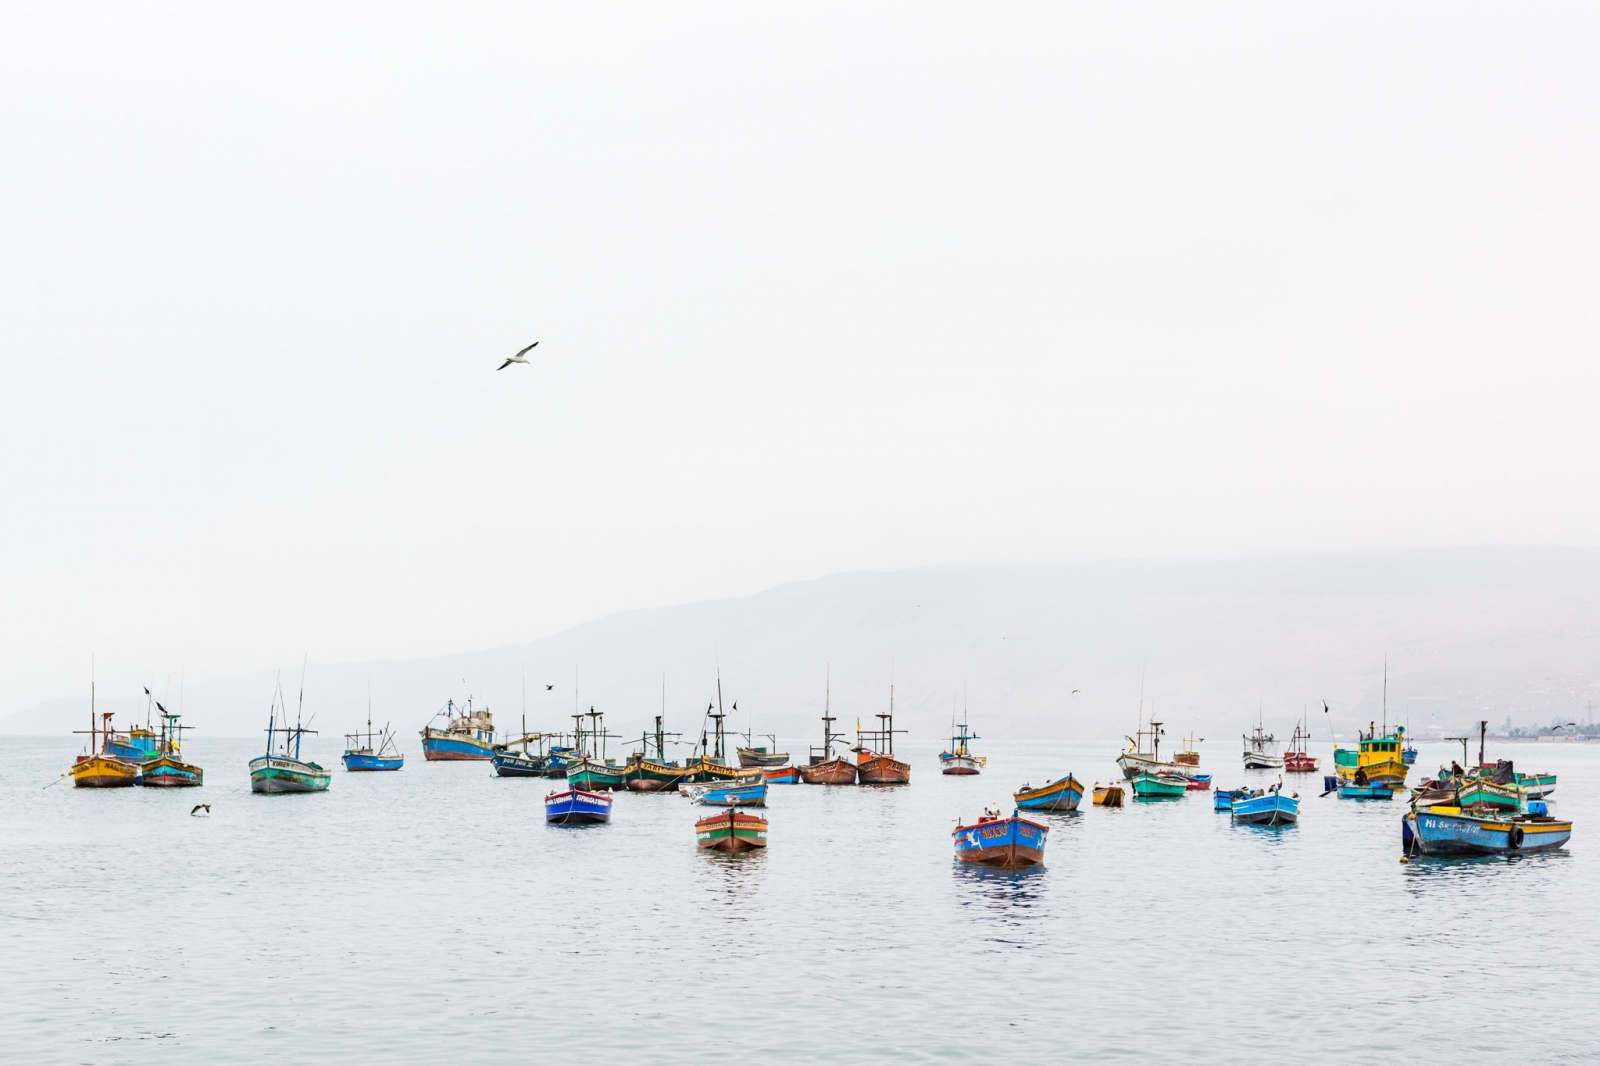 Art and Documentary Photography - Loading Fisheries010.jpg